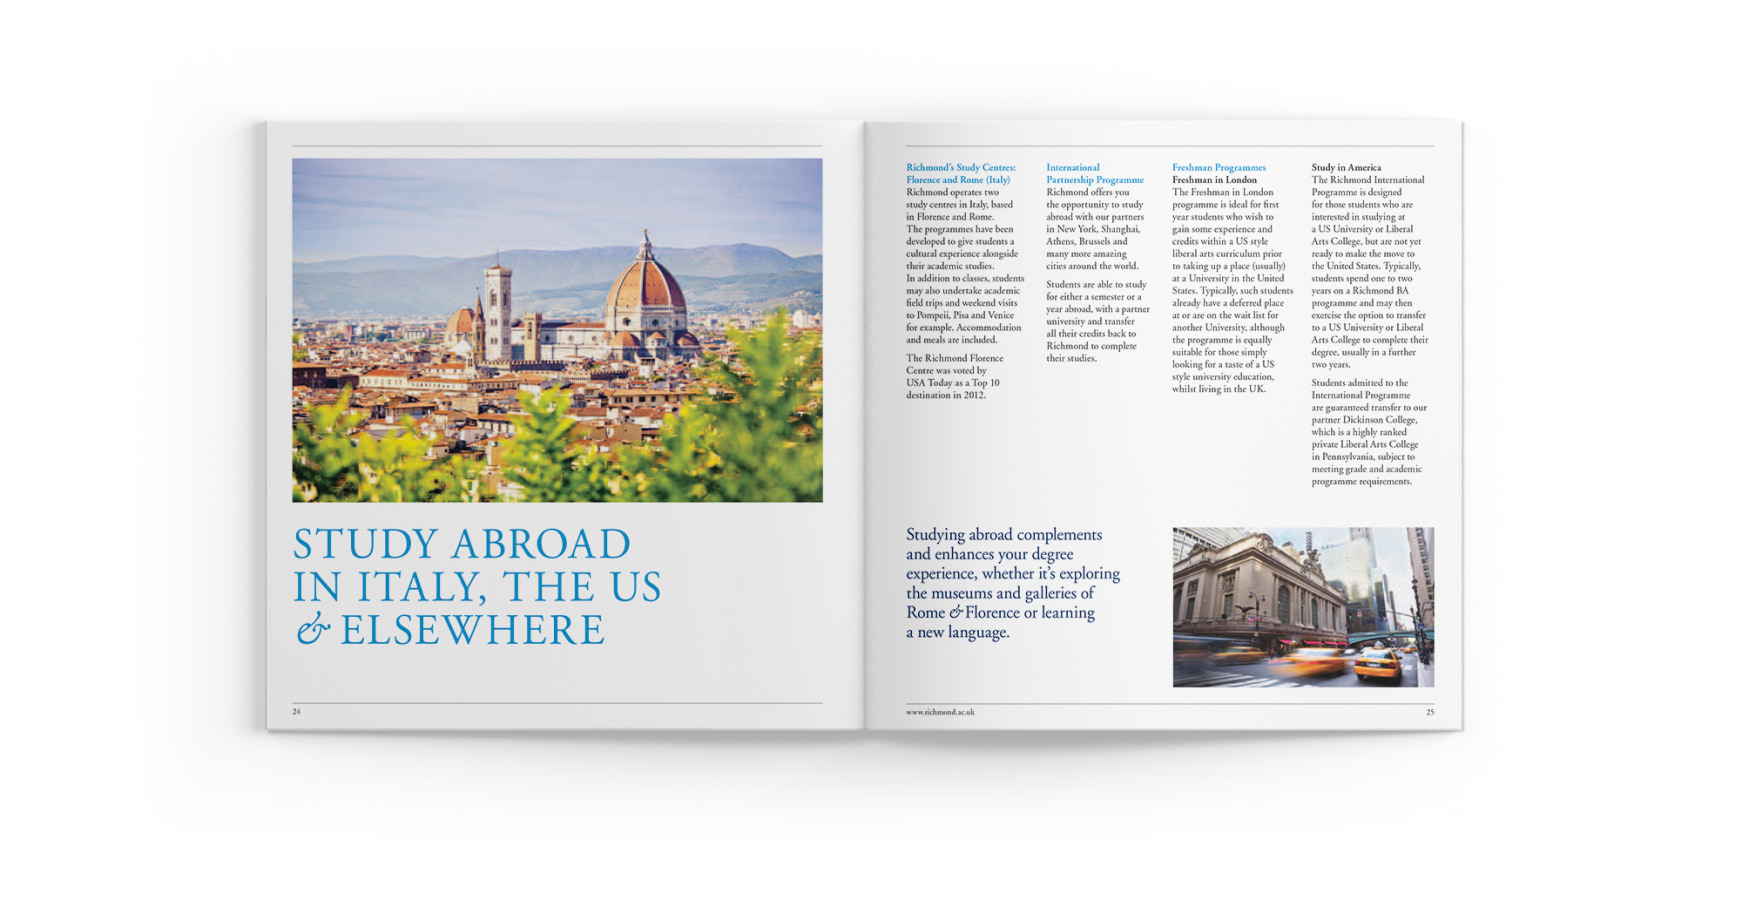 Richmond university prospectus inside spread about Italy and studying abroad on a white background